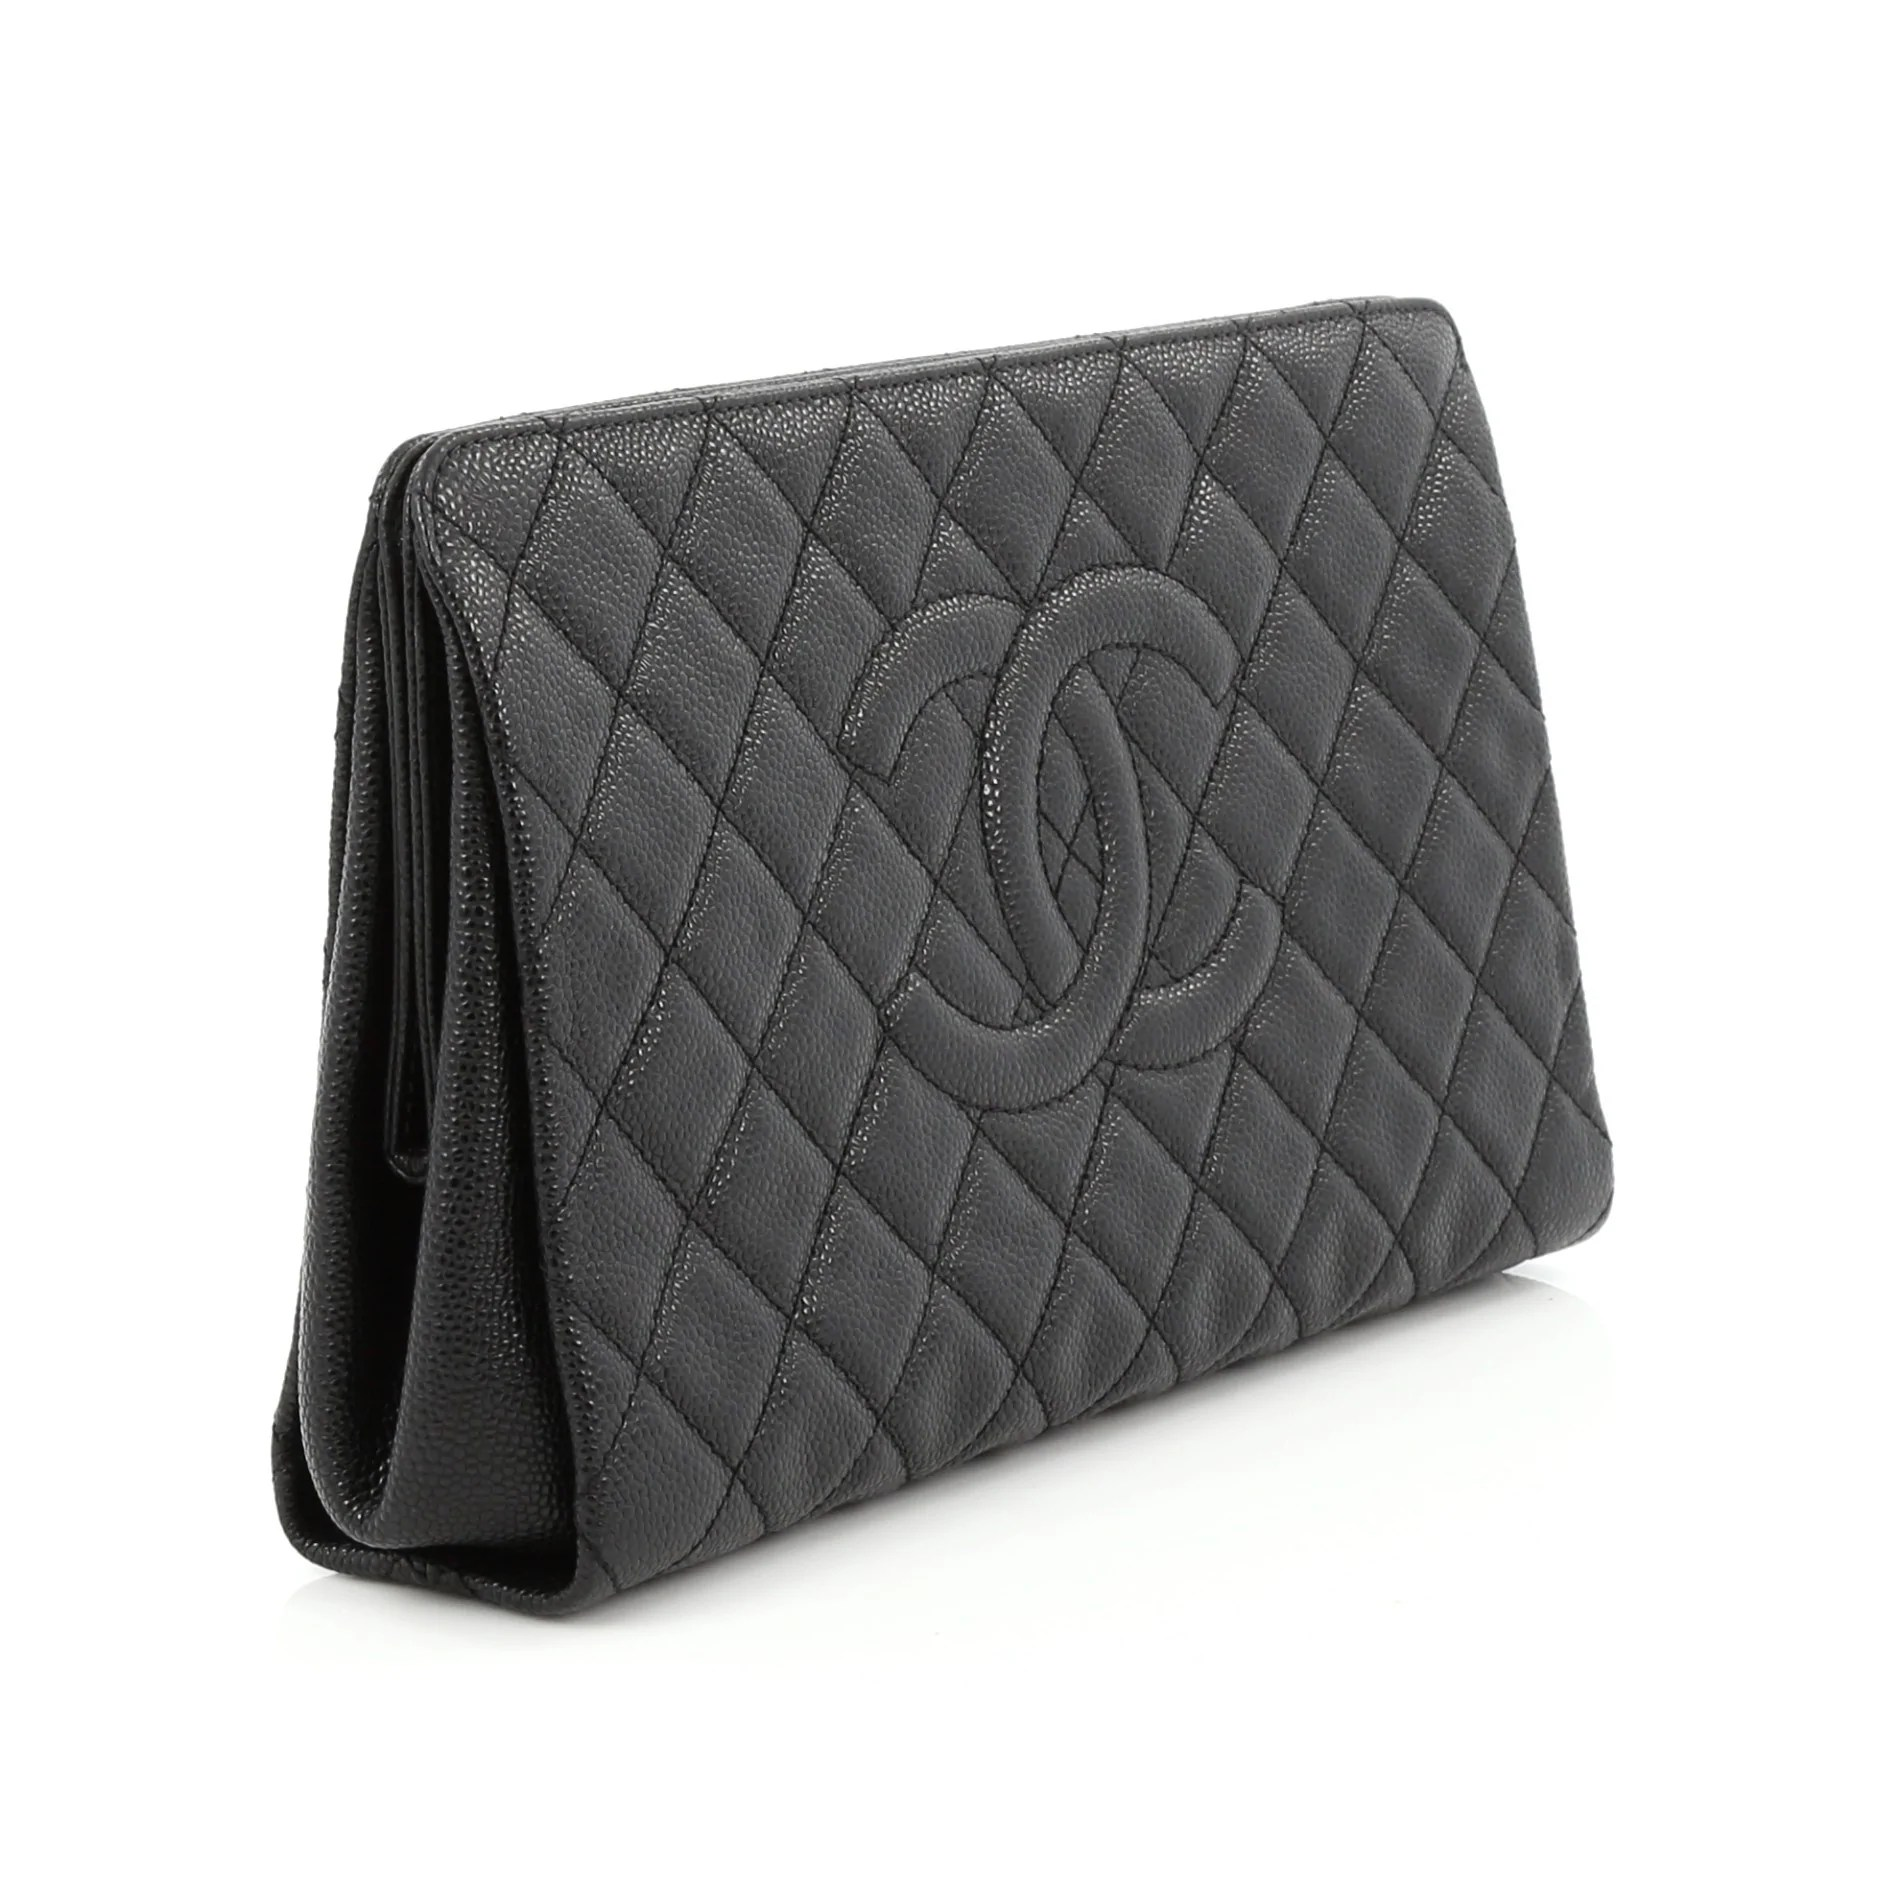 Chanel Timeless Cc Clutch Quilted Caviar Large Black